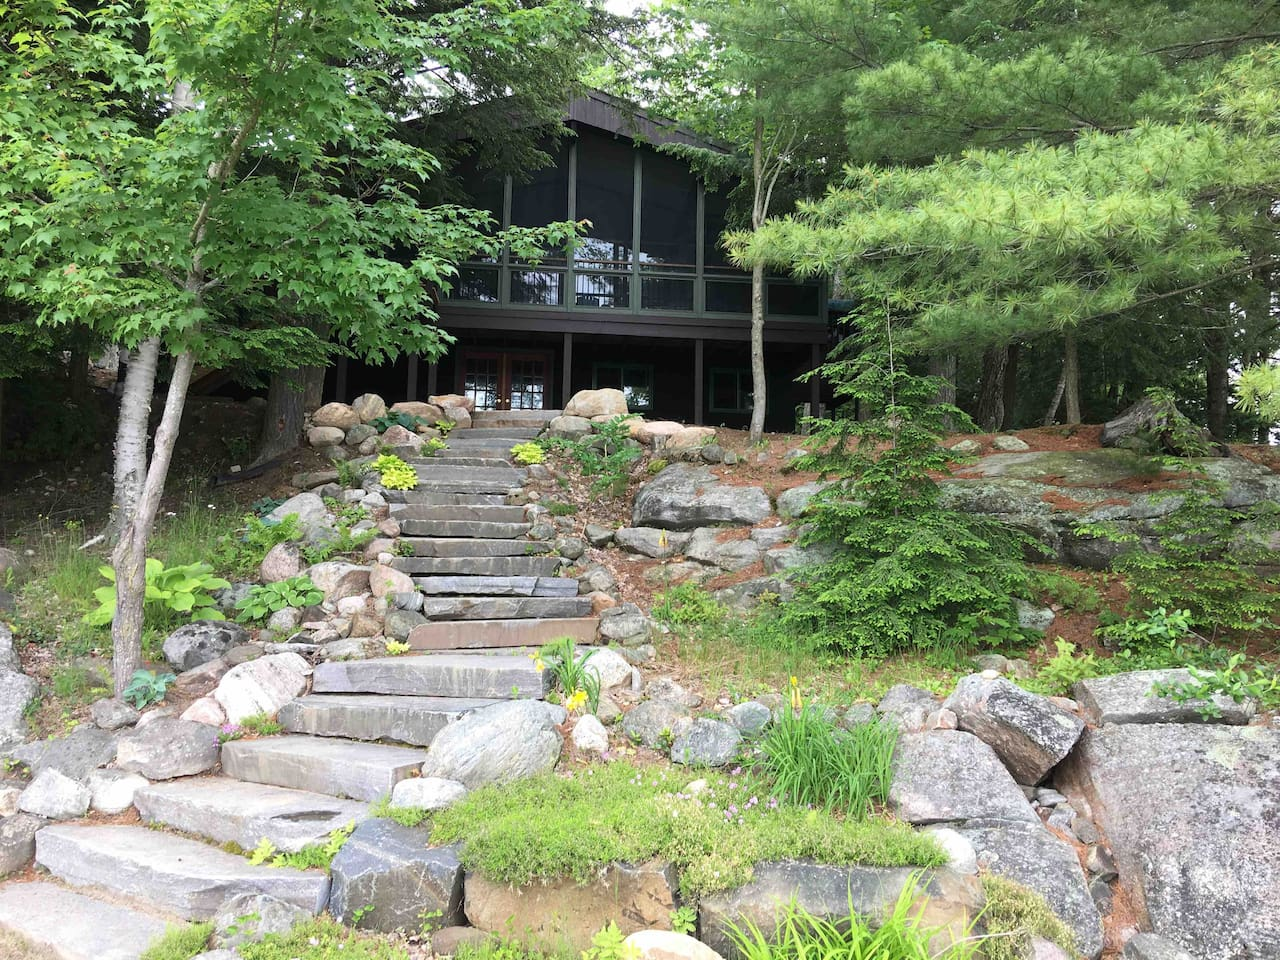 Classic Muskoka cottage, west-facing for year-round sunsets. Stone steps lead to small, private beach.